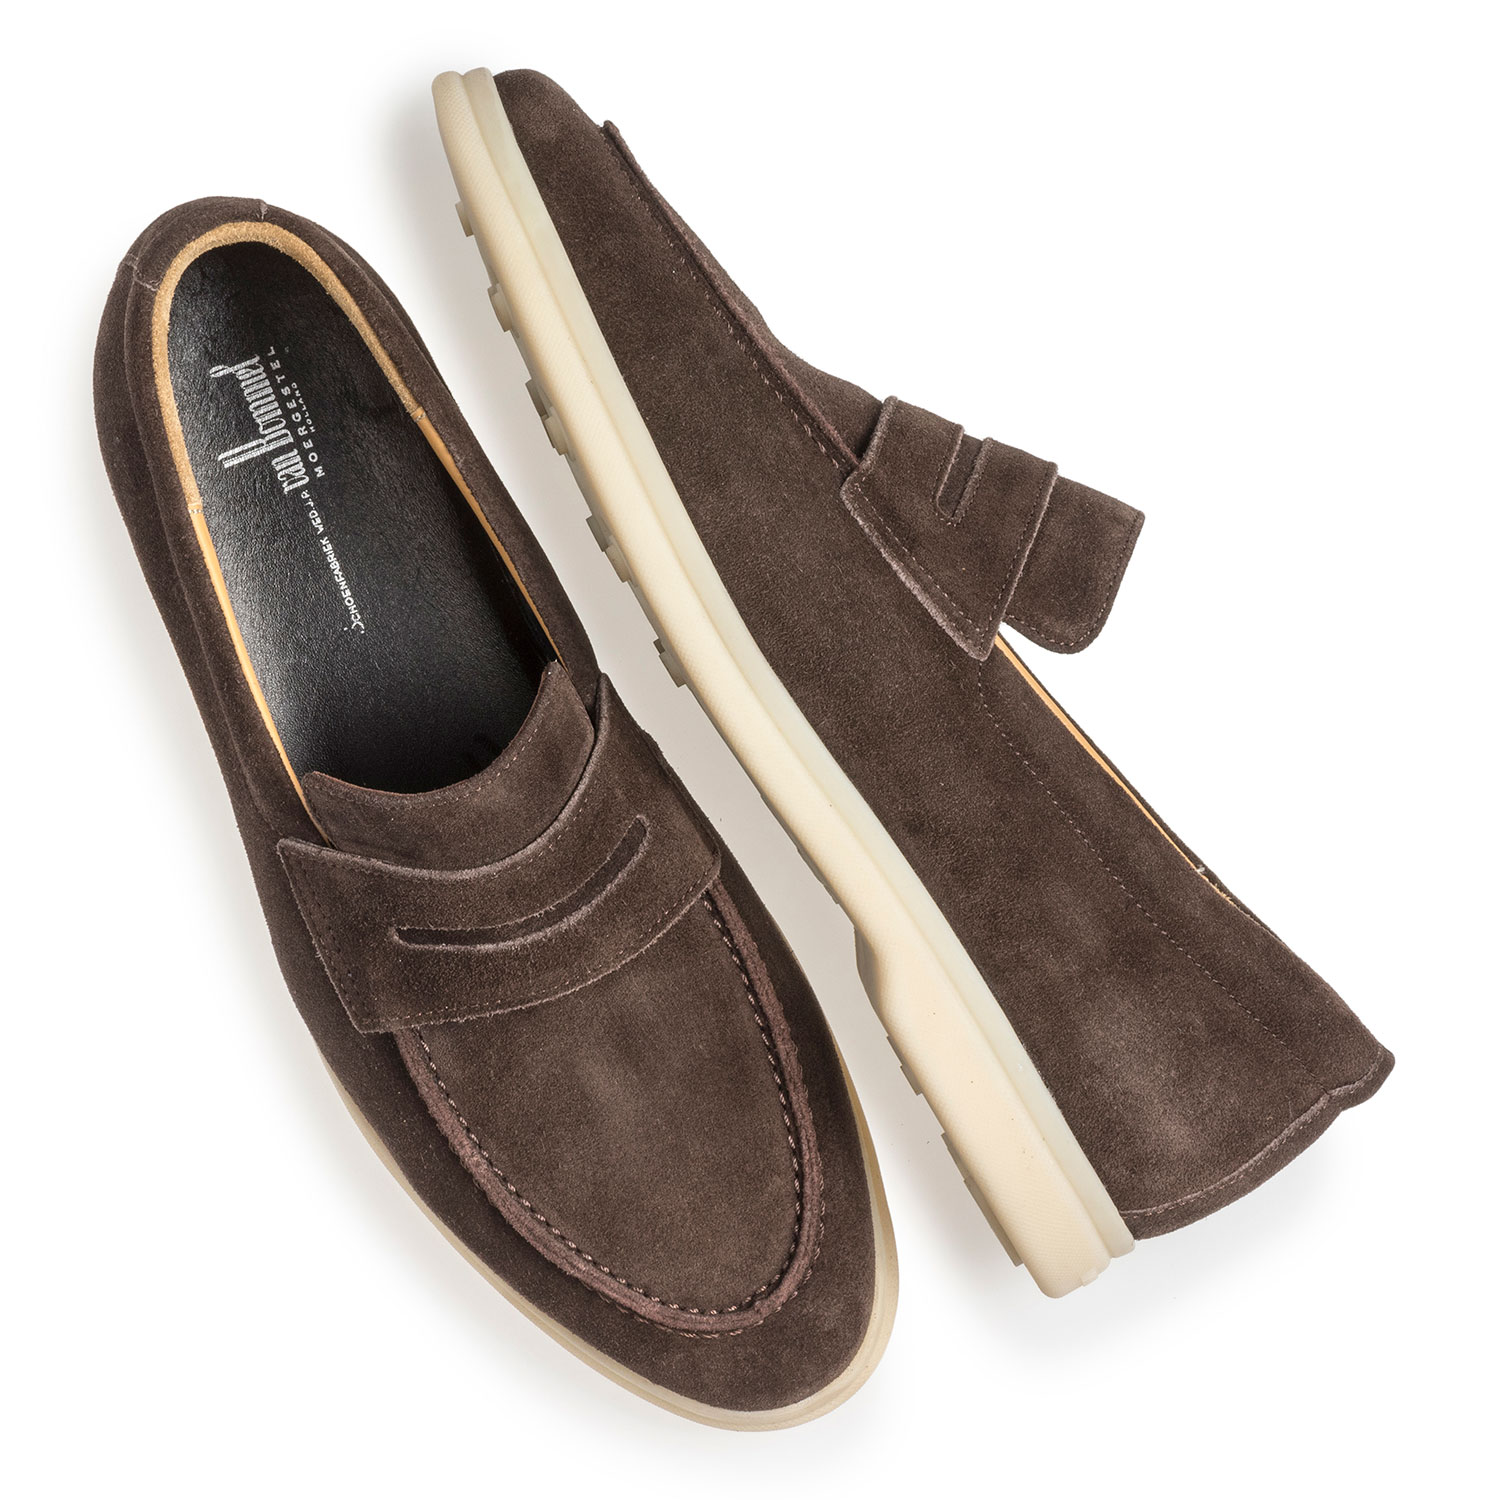 11205/00 - Dark brown suede leather loafer